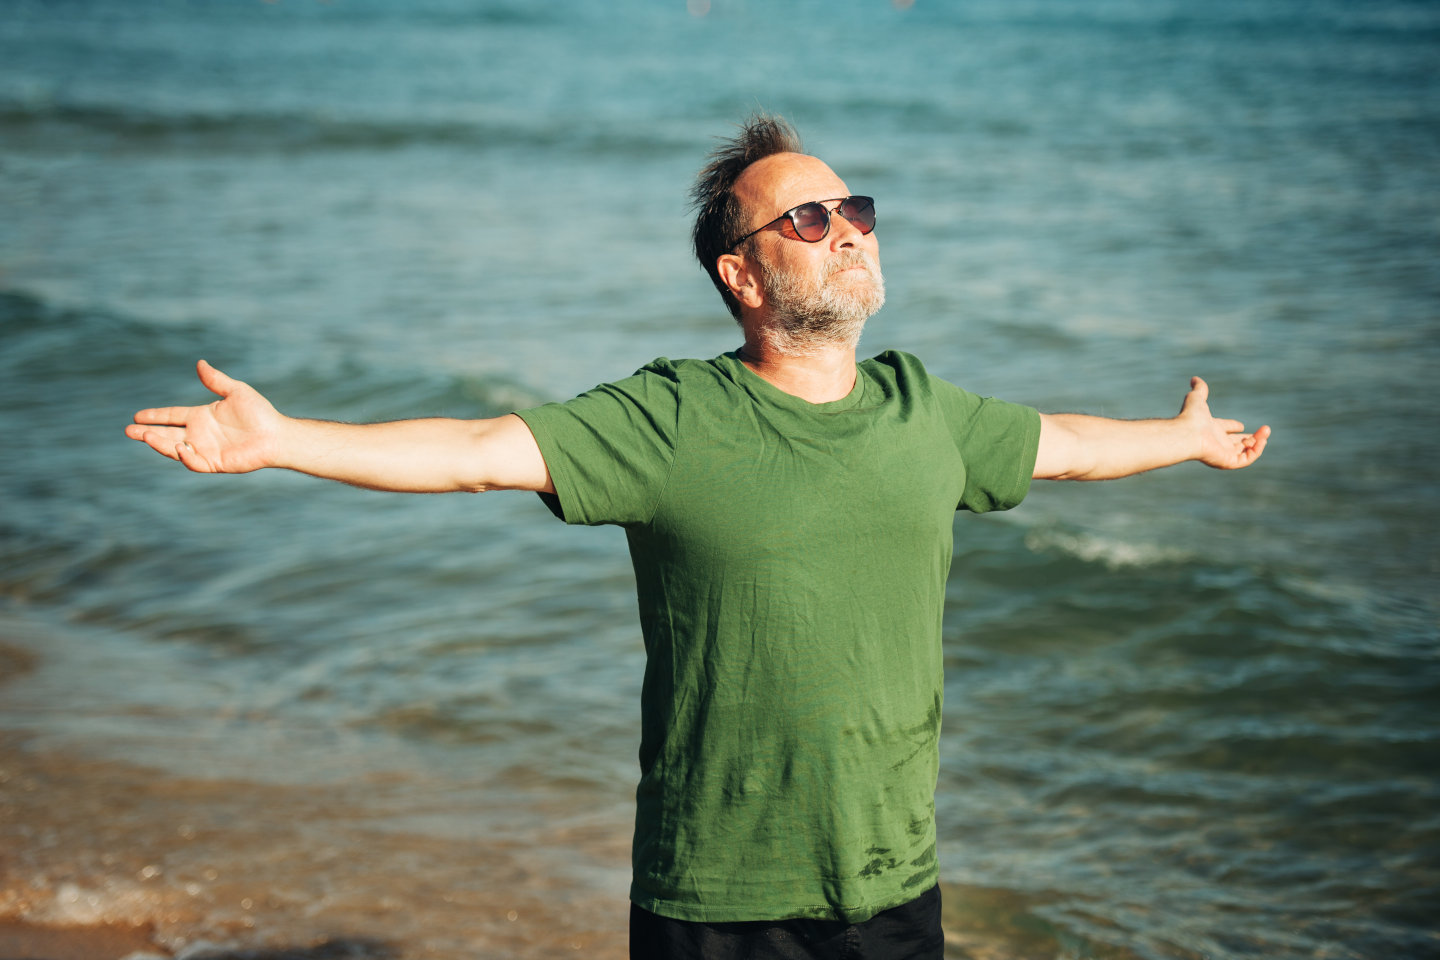 Portrait of happy middle age man enjoying nice sunny day on the beach, wearing green t-shirt and sunglasses, arms wide open